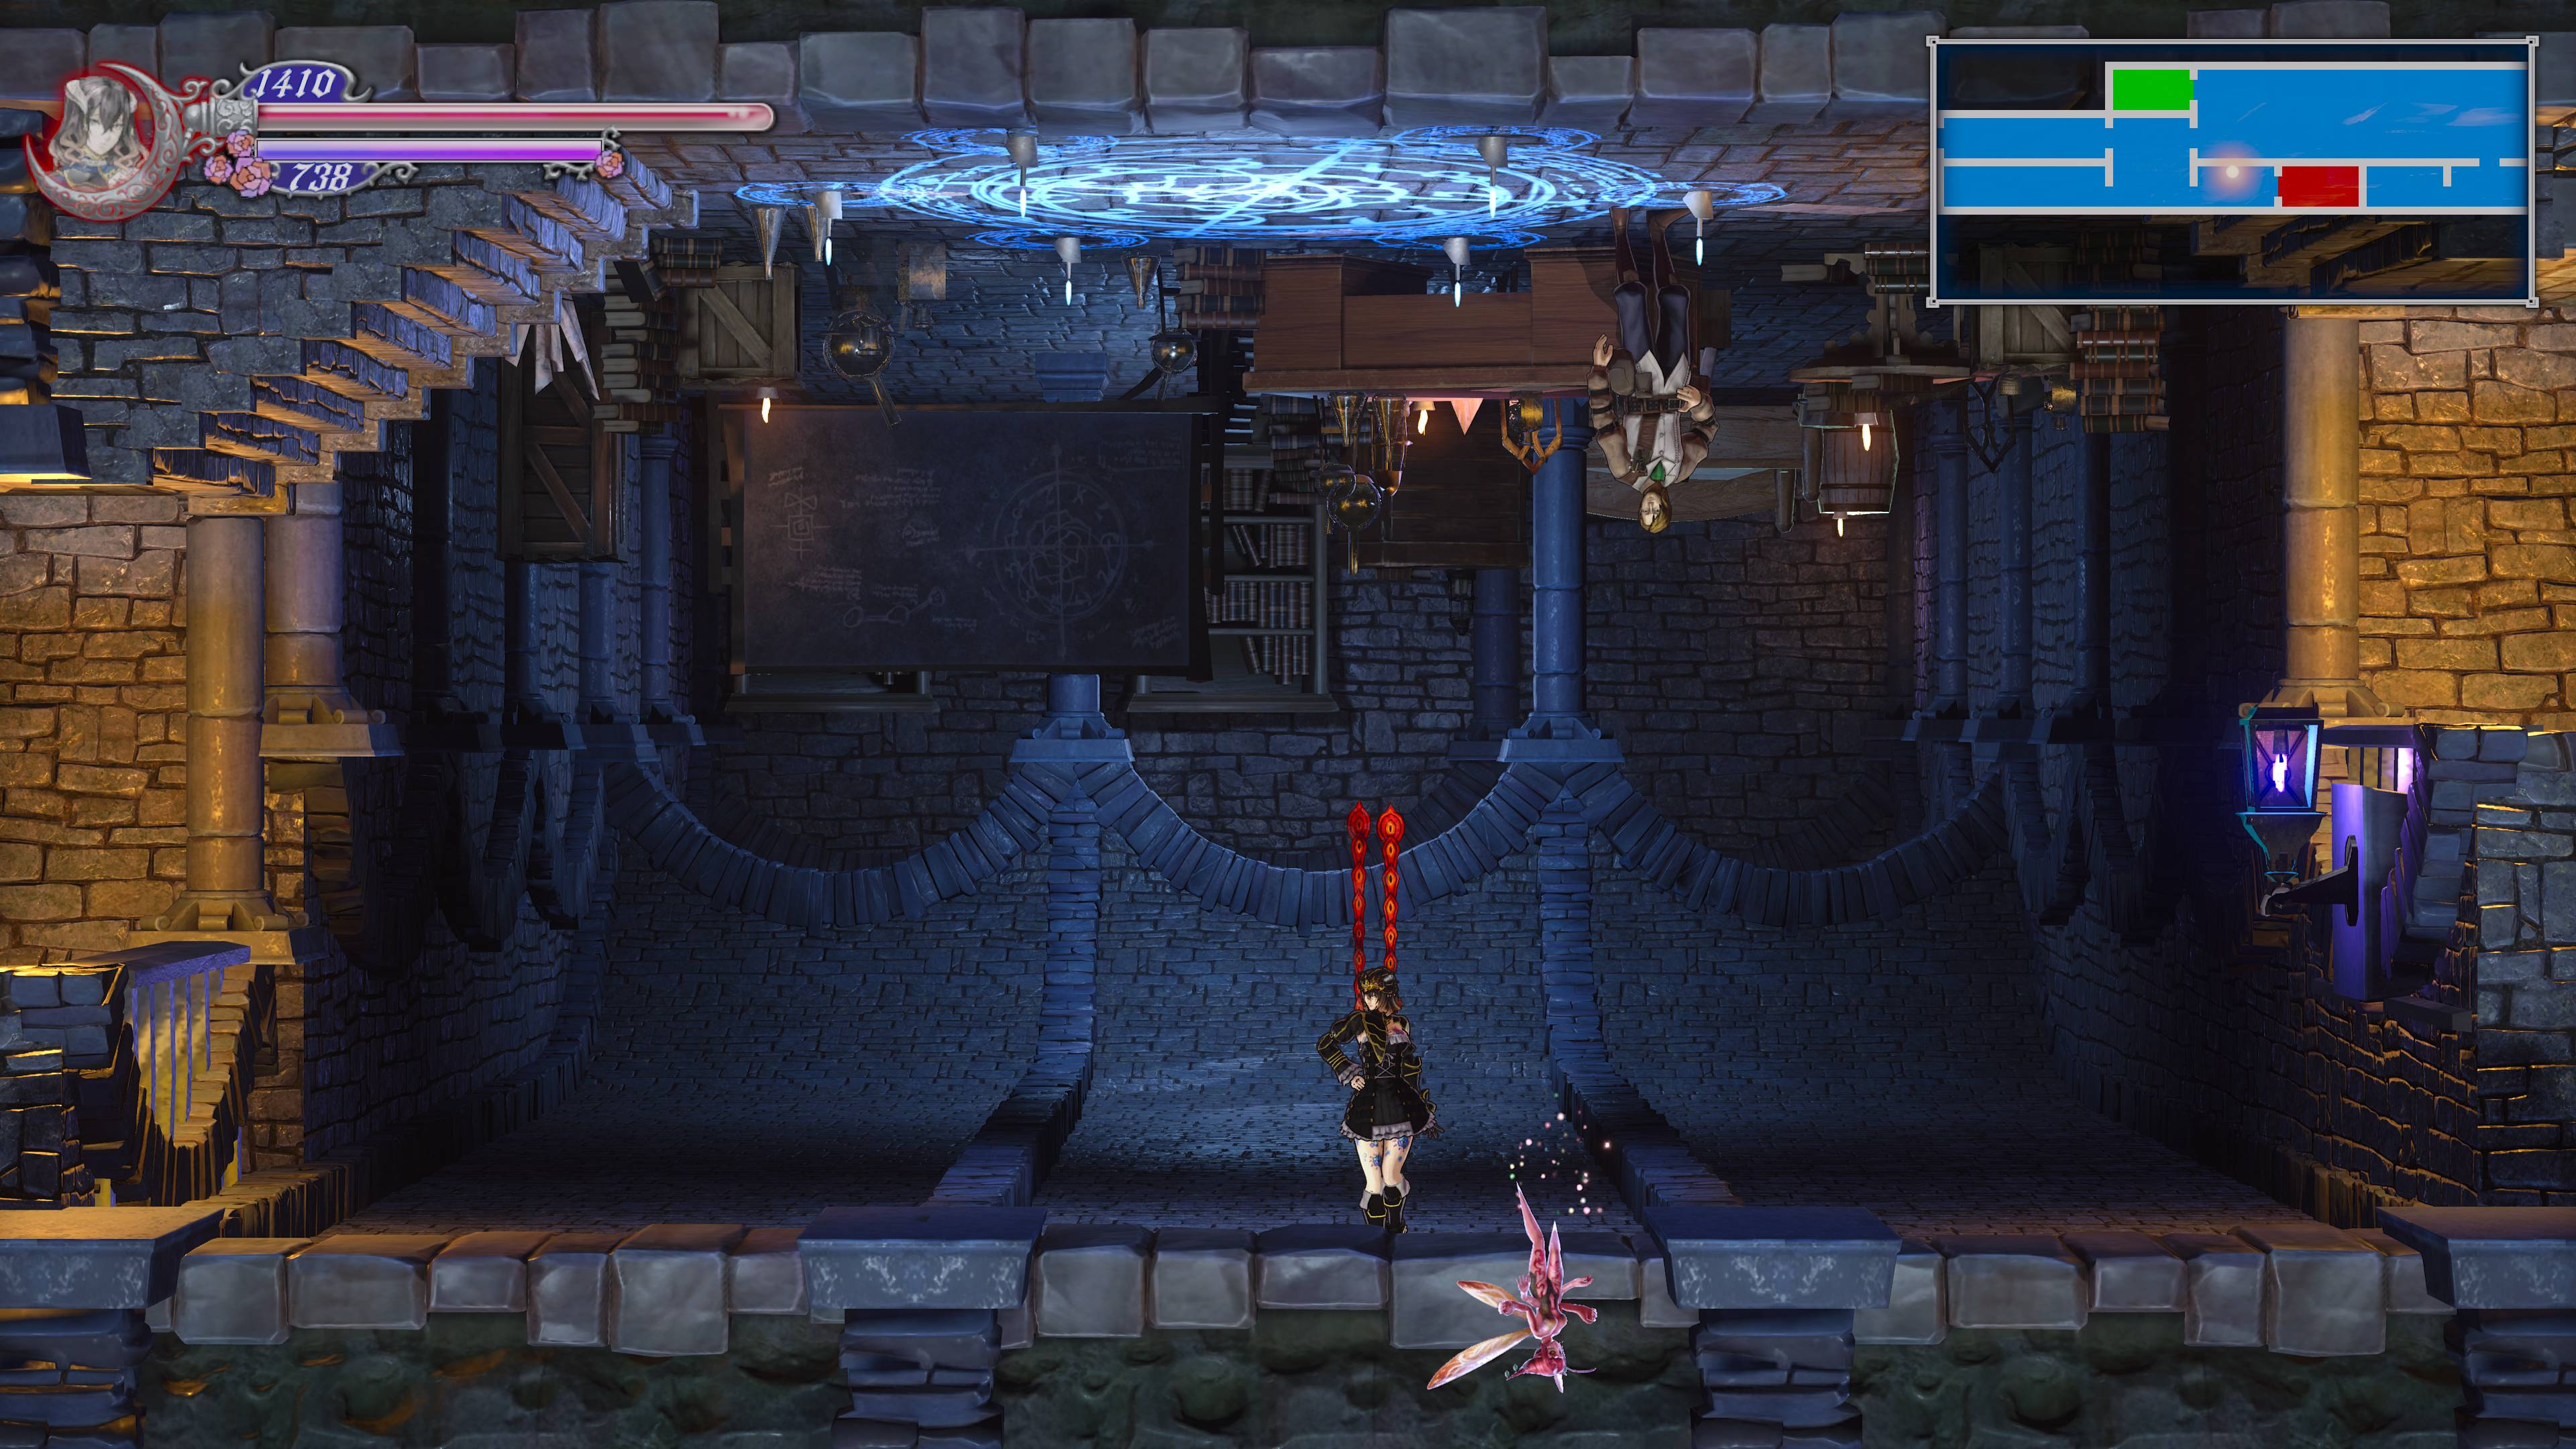 Vgq753x - 【悲報】今週発売のbloodstainedのSwitch版がクソだと話題に